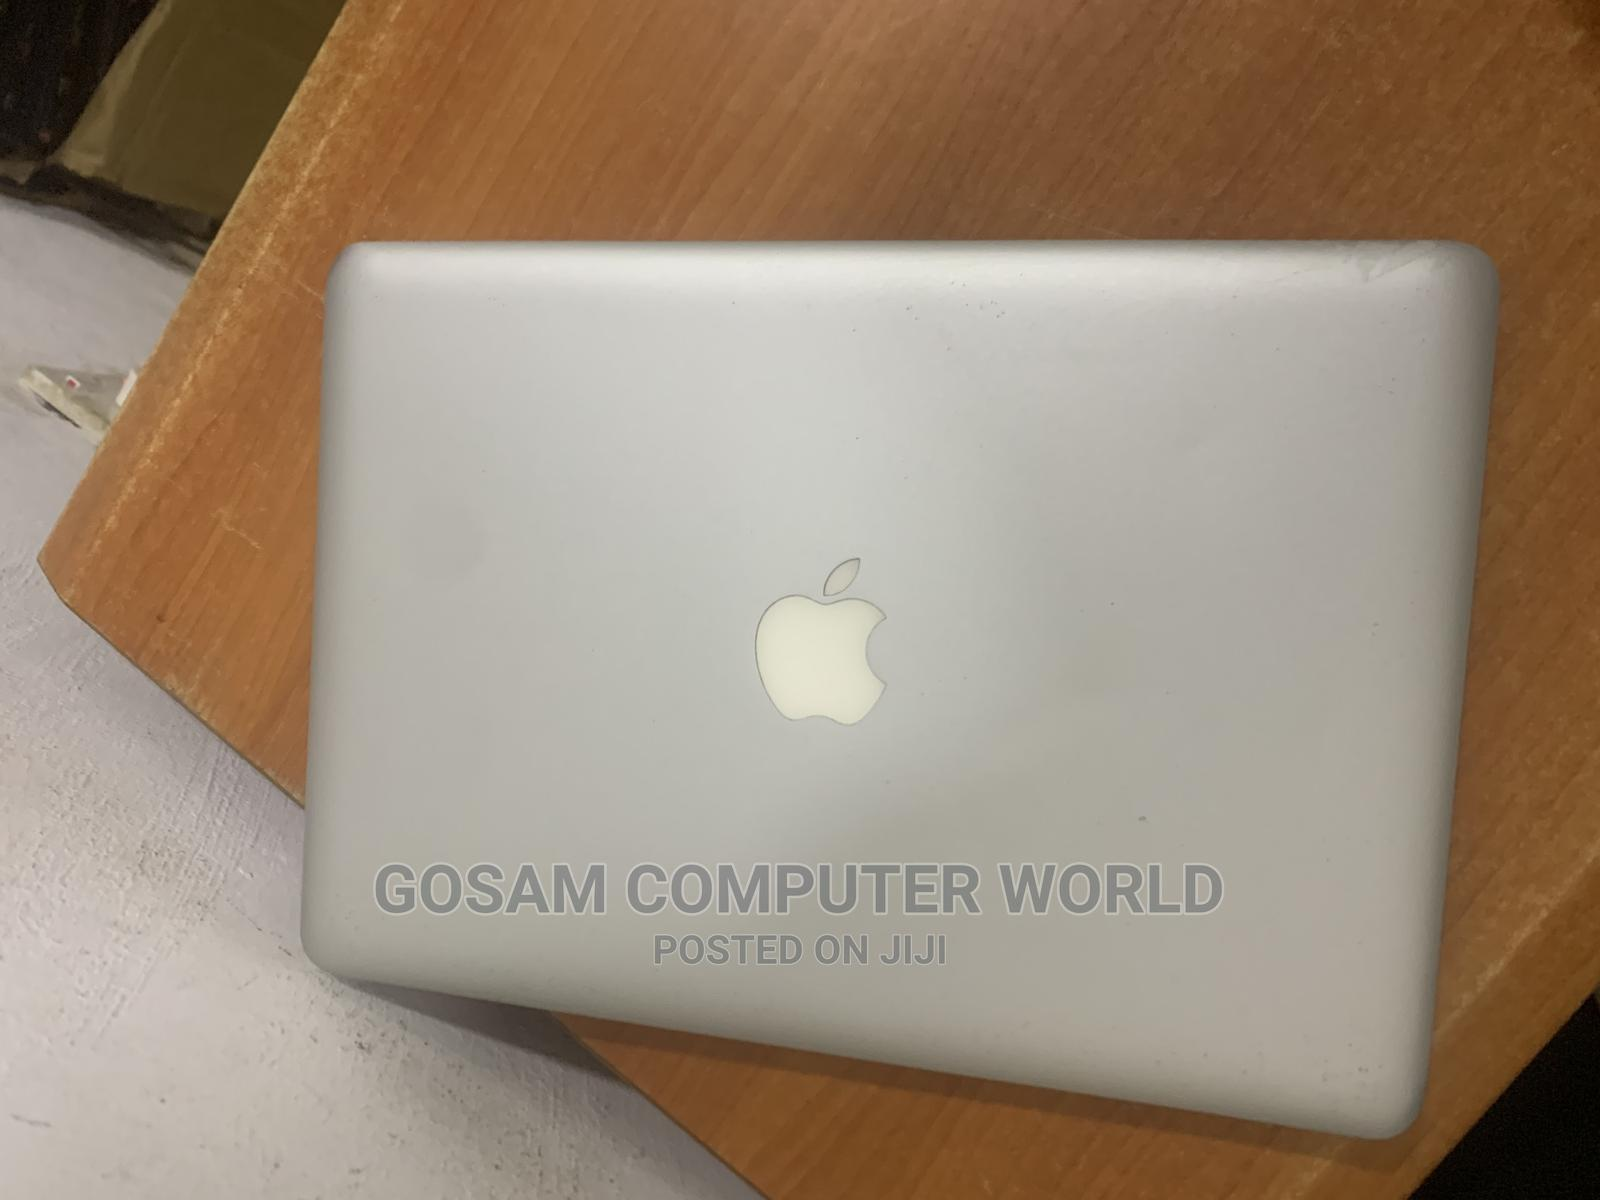 Laptop Apple MacBook Pro 2011 4GB Intel Core I5 HDD 500GB | Laptops & Computers for sale in Ikeja, Lagos State, Nigeria